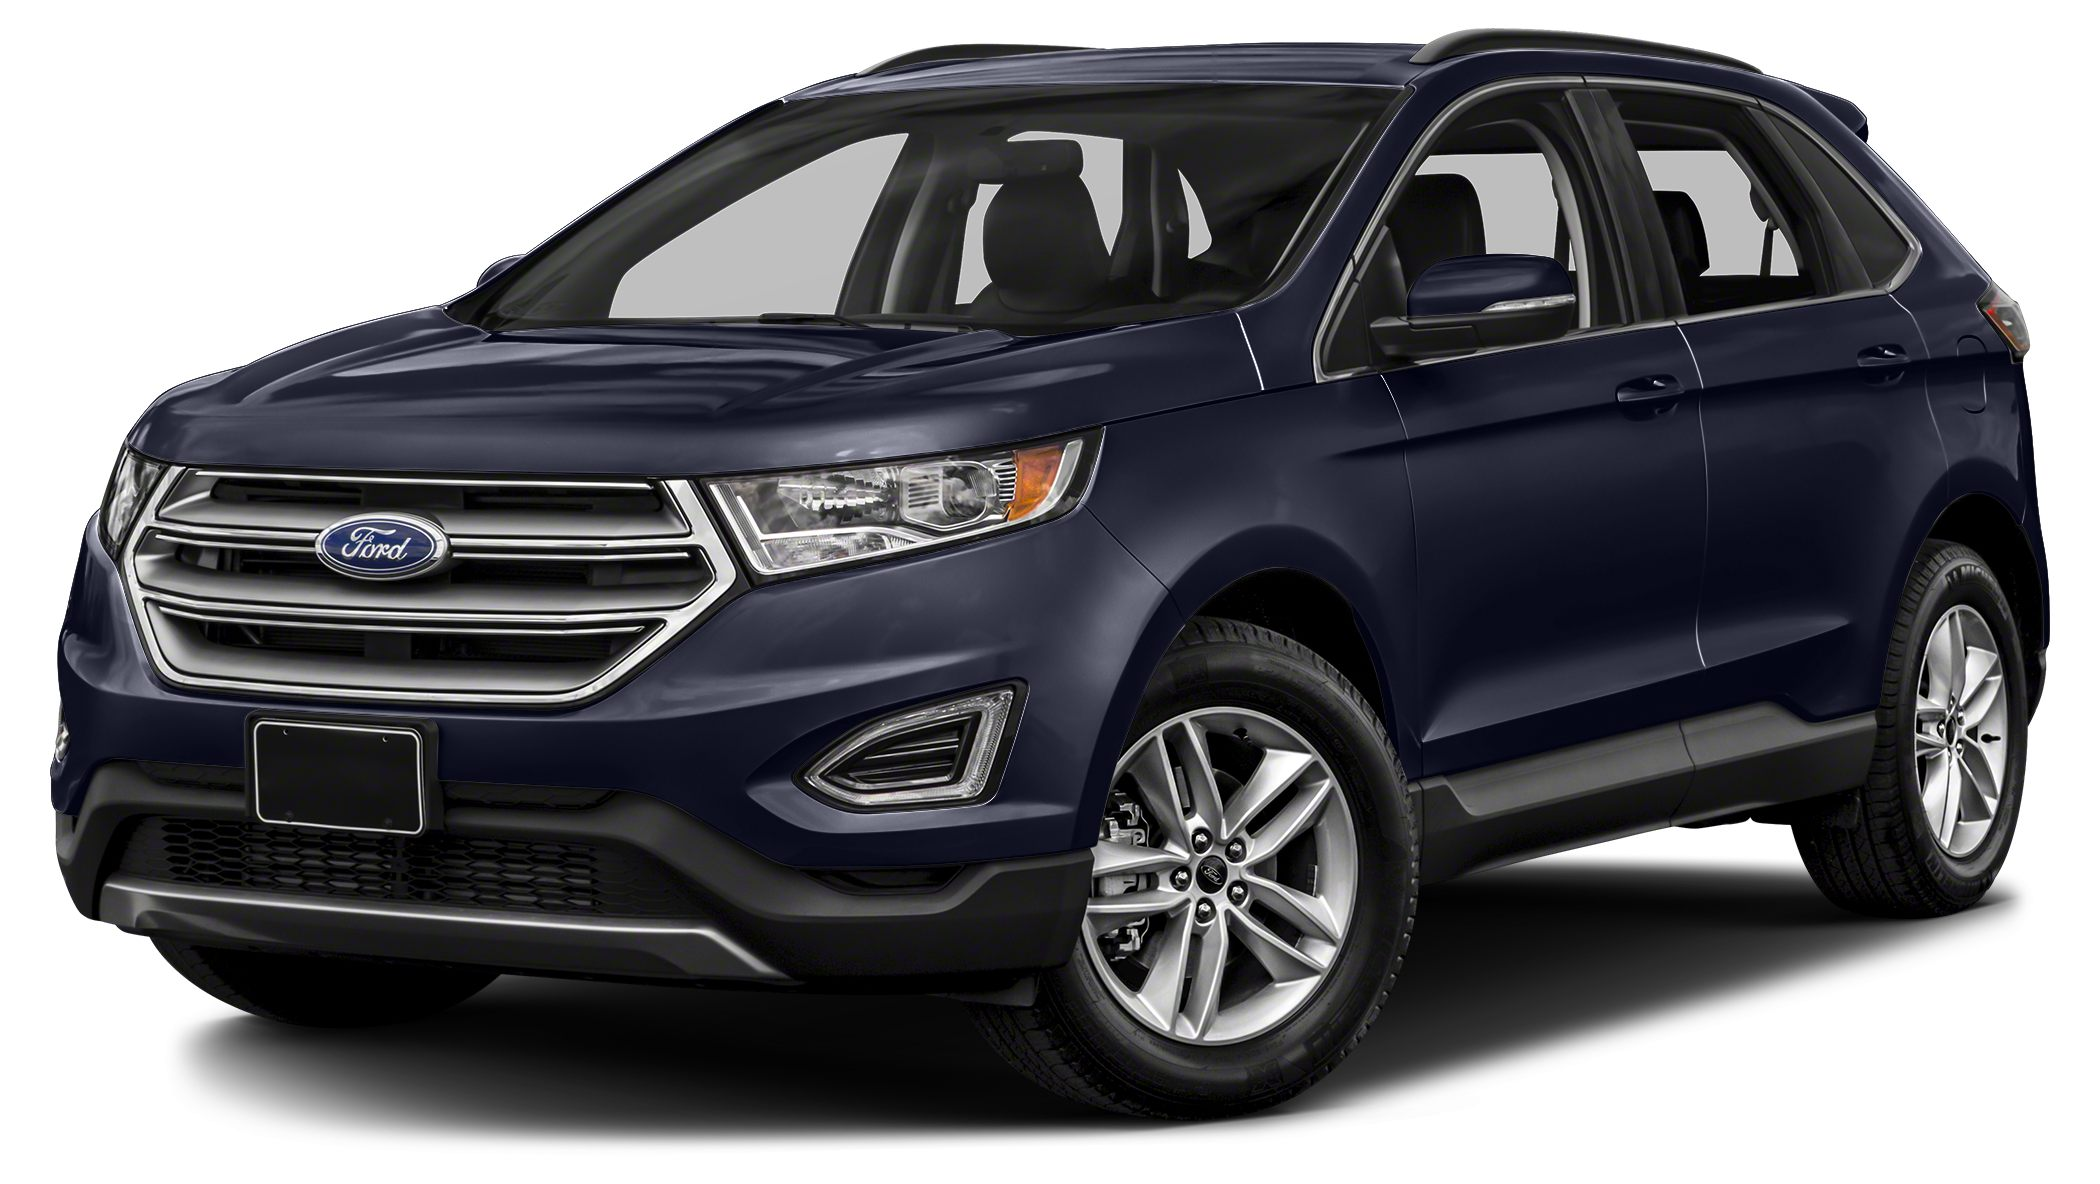 2016 Ford Edge Titanium The all new 2016 Ford Edge is taking crossovers to a whole new level The